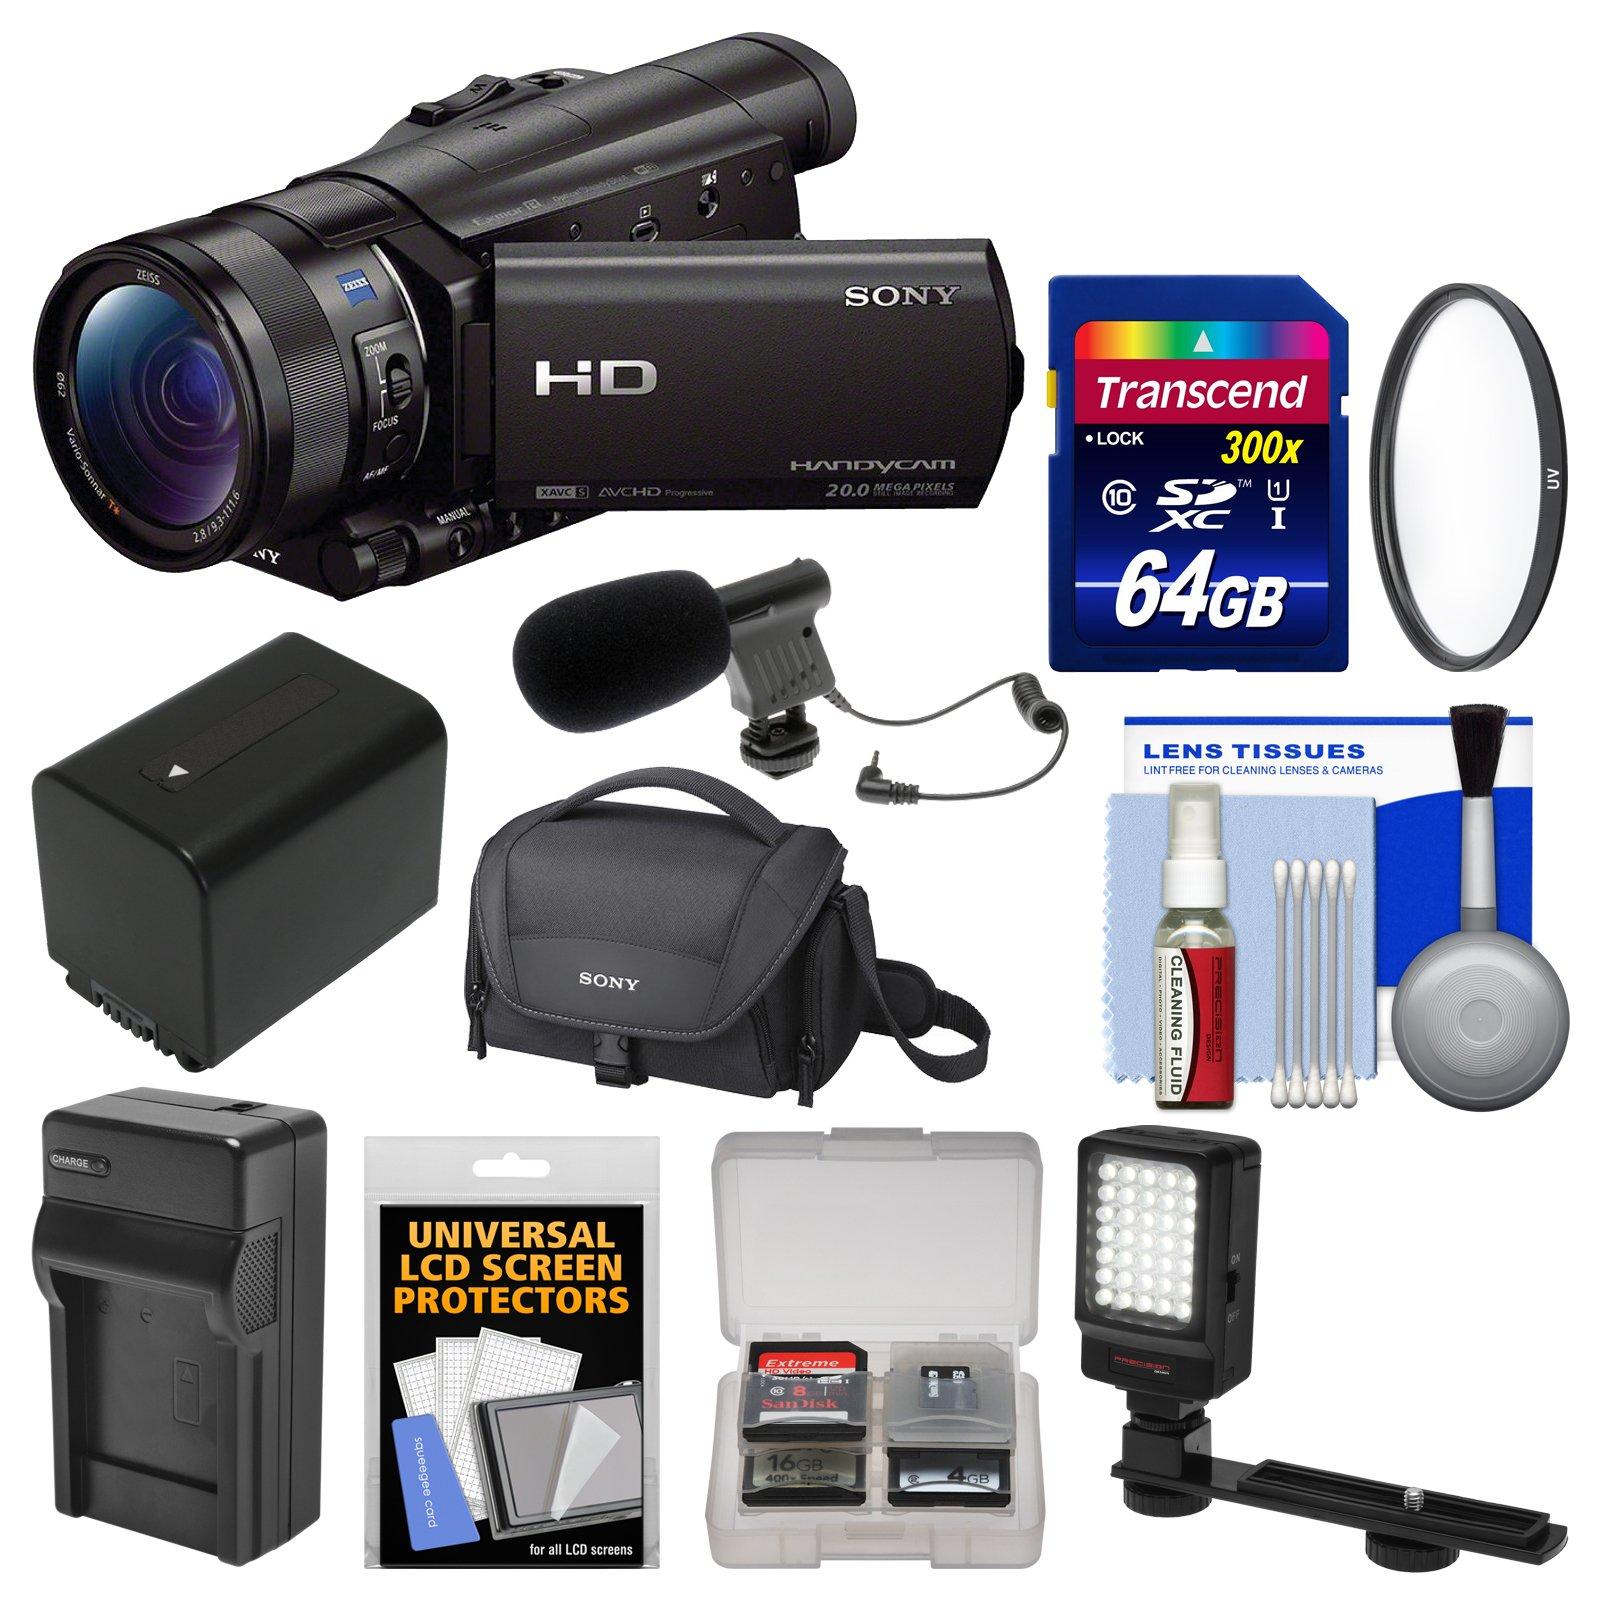 Sony Handycam HDR-CX900 Wi-Fi HD Video Camera Camcorder with 64GB Card + Case + LED Light + Microphone + Battery & Charger + Accessory Kit